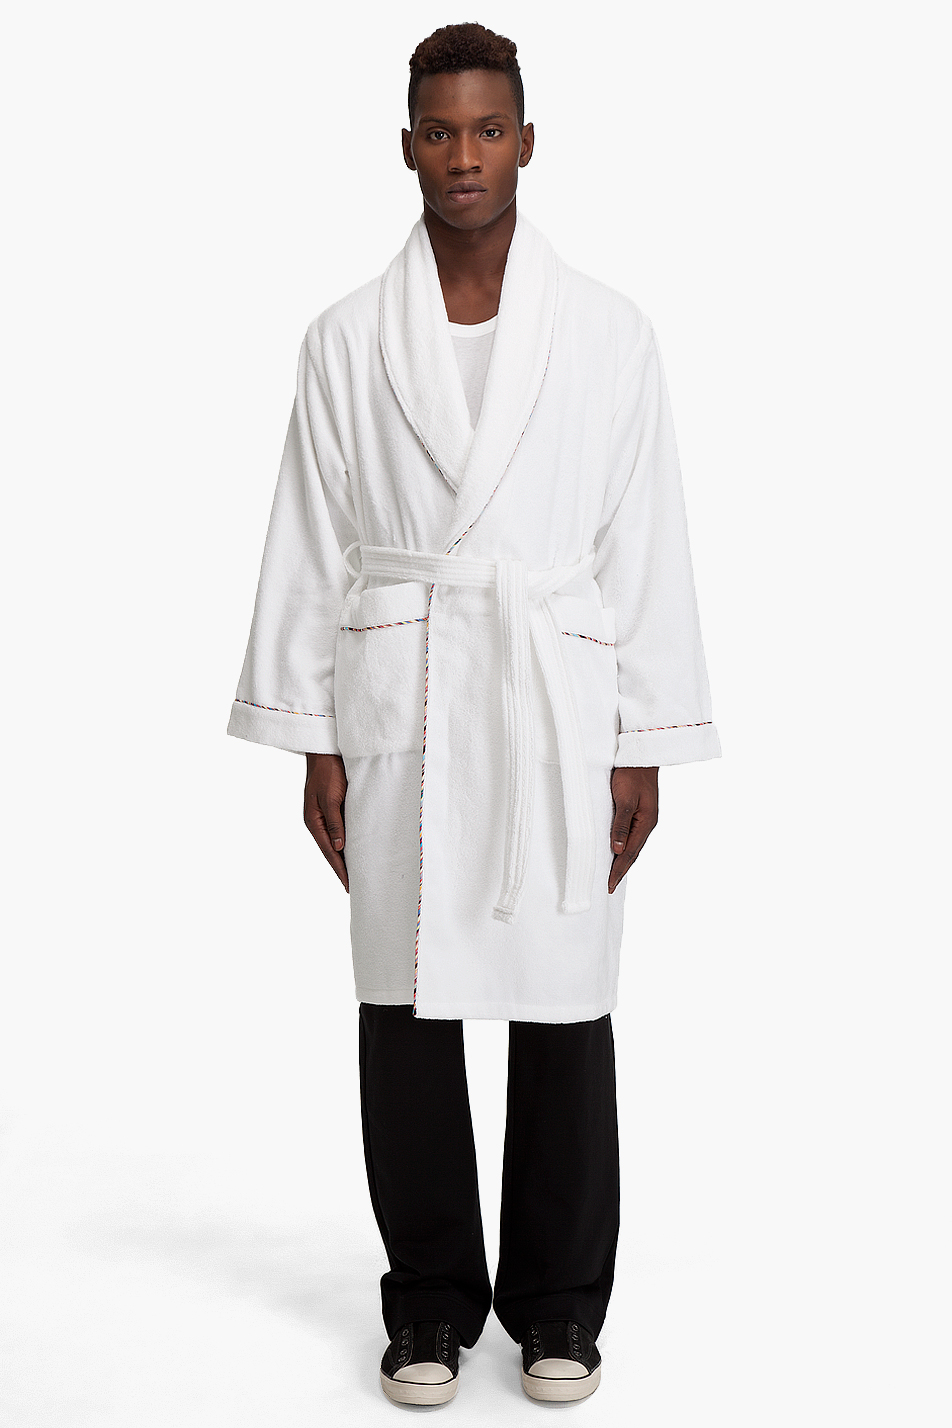 paul smith white cotton terry robe in white for men lyst. Black Bedroom Furniture Sets. Home Design Ideas